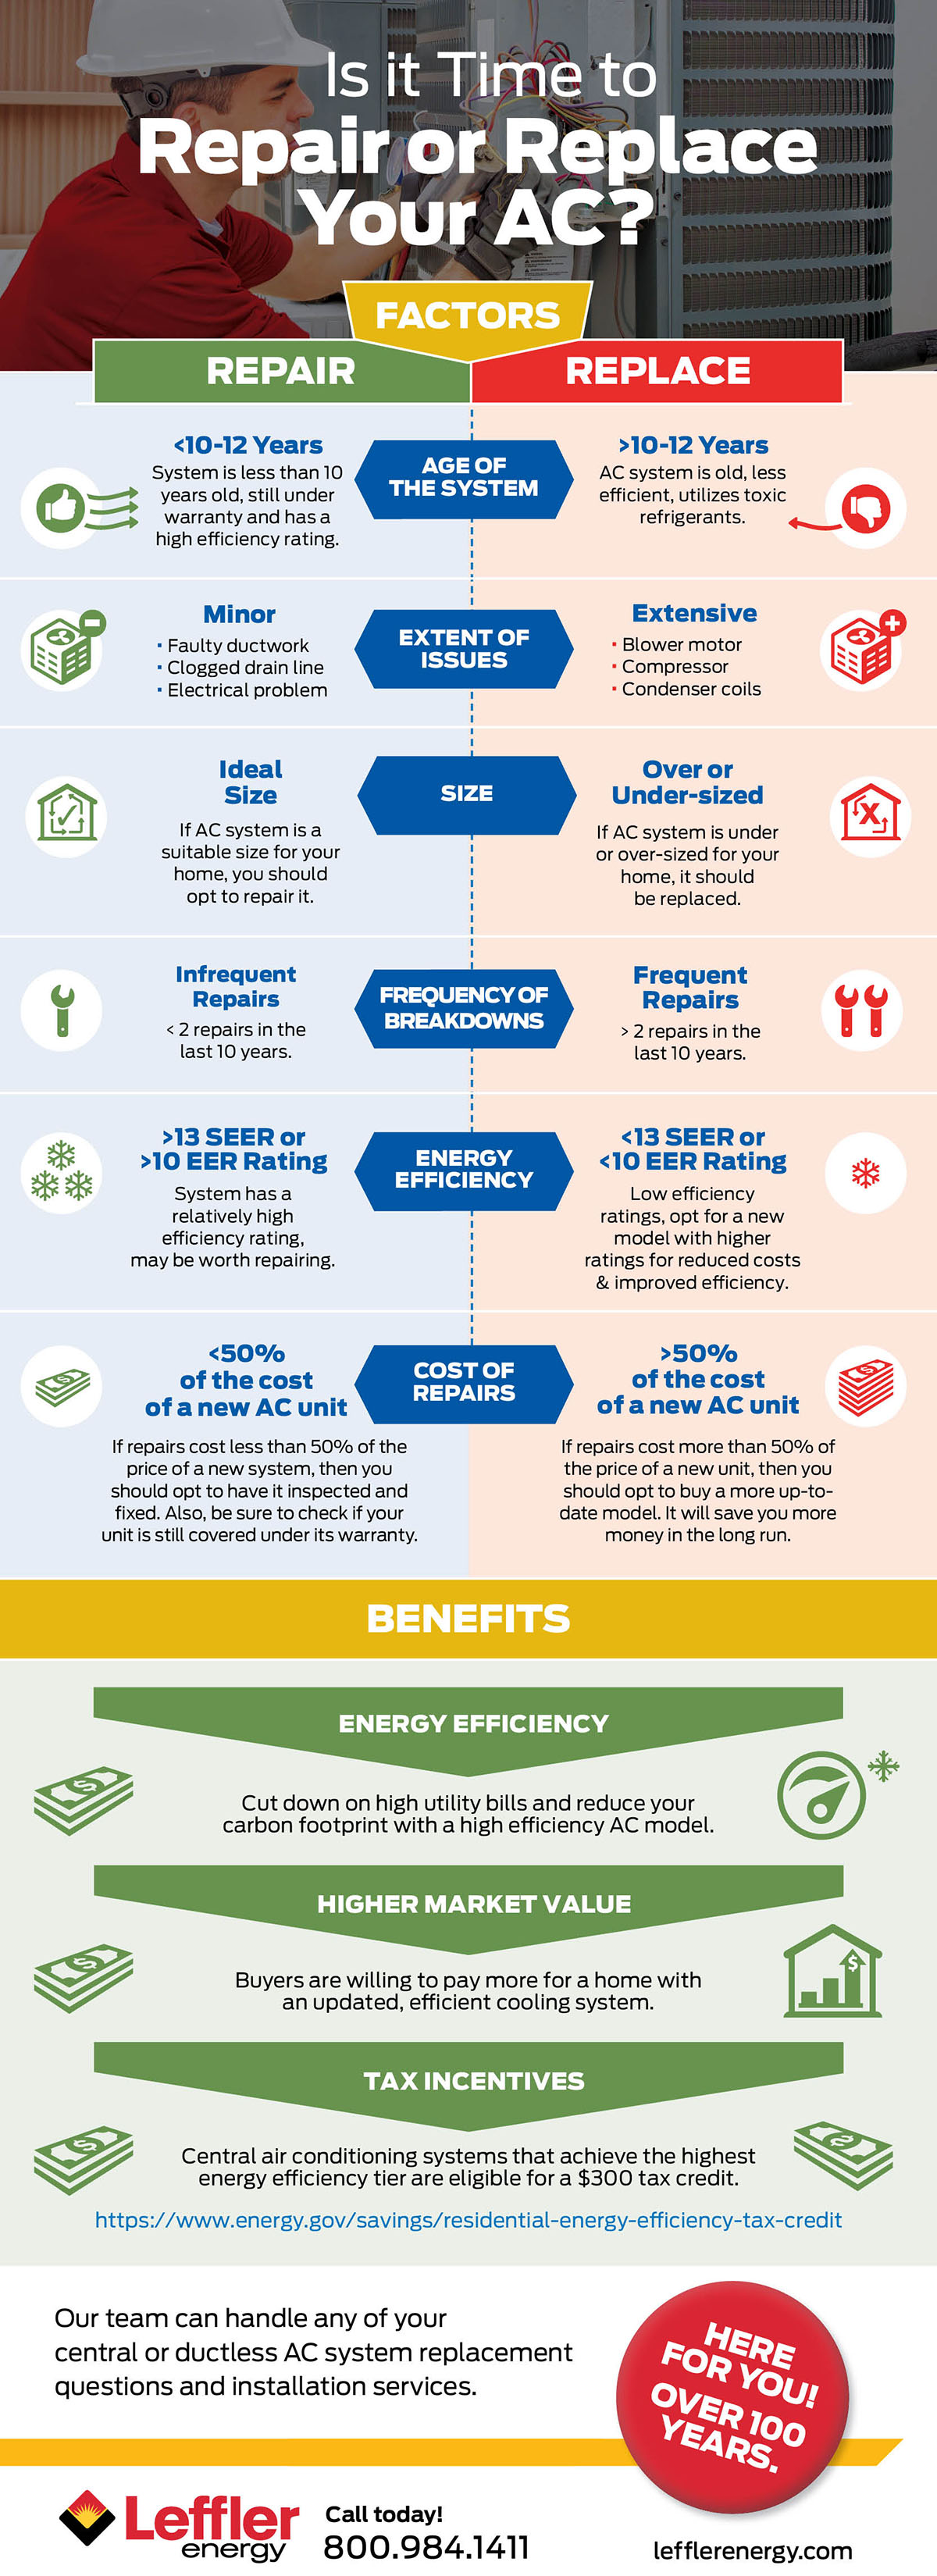 Is it time to repair or replace your AC infographic